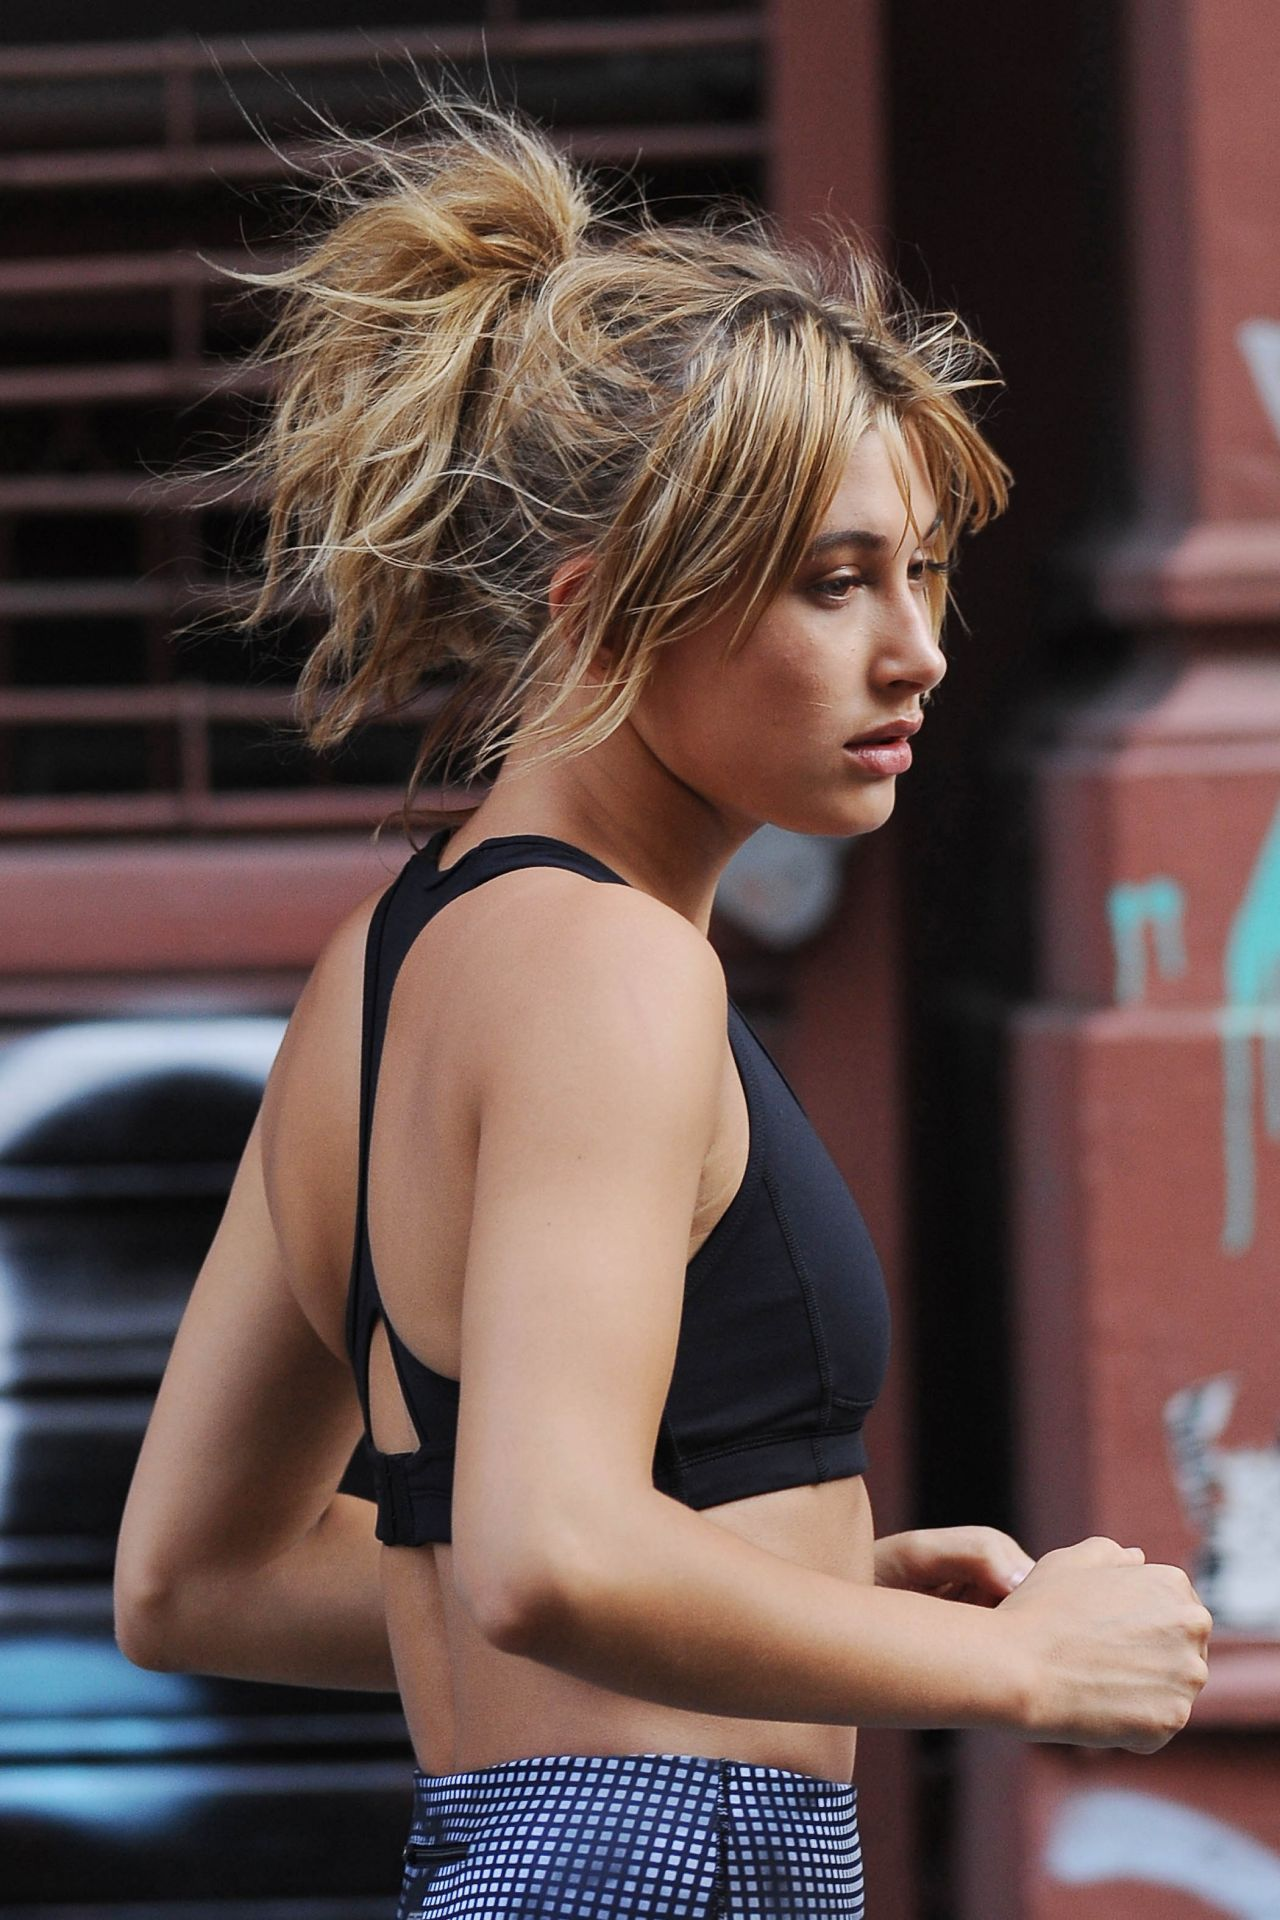 Hailey Baldwin On Set Of A Photoshoot In Nyc September 2015